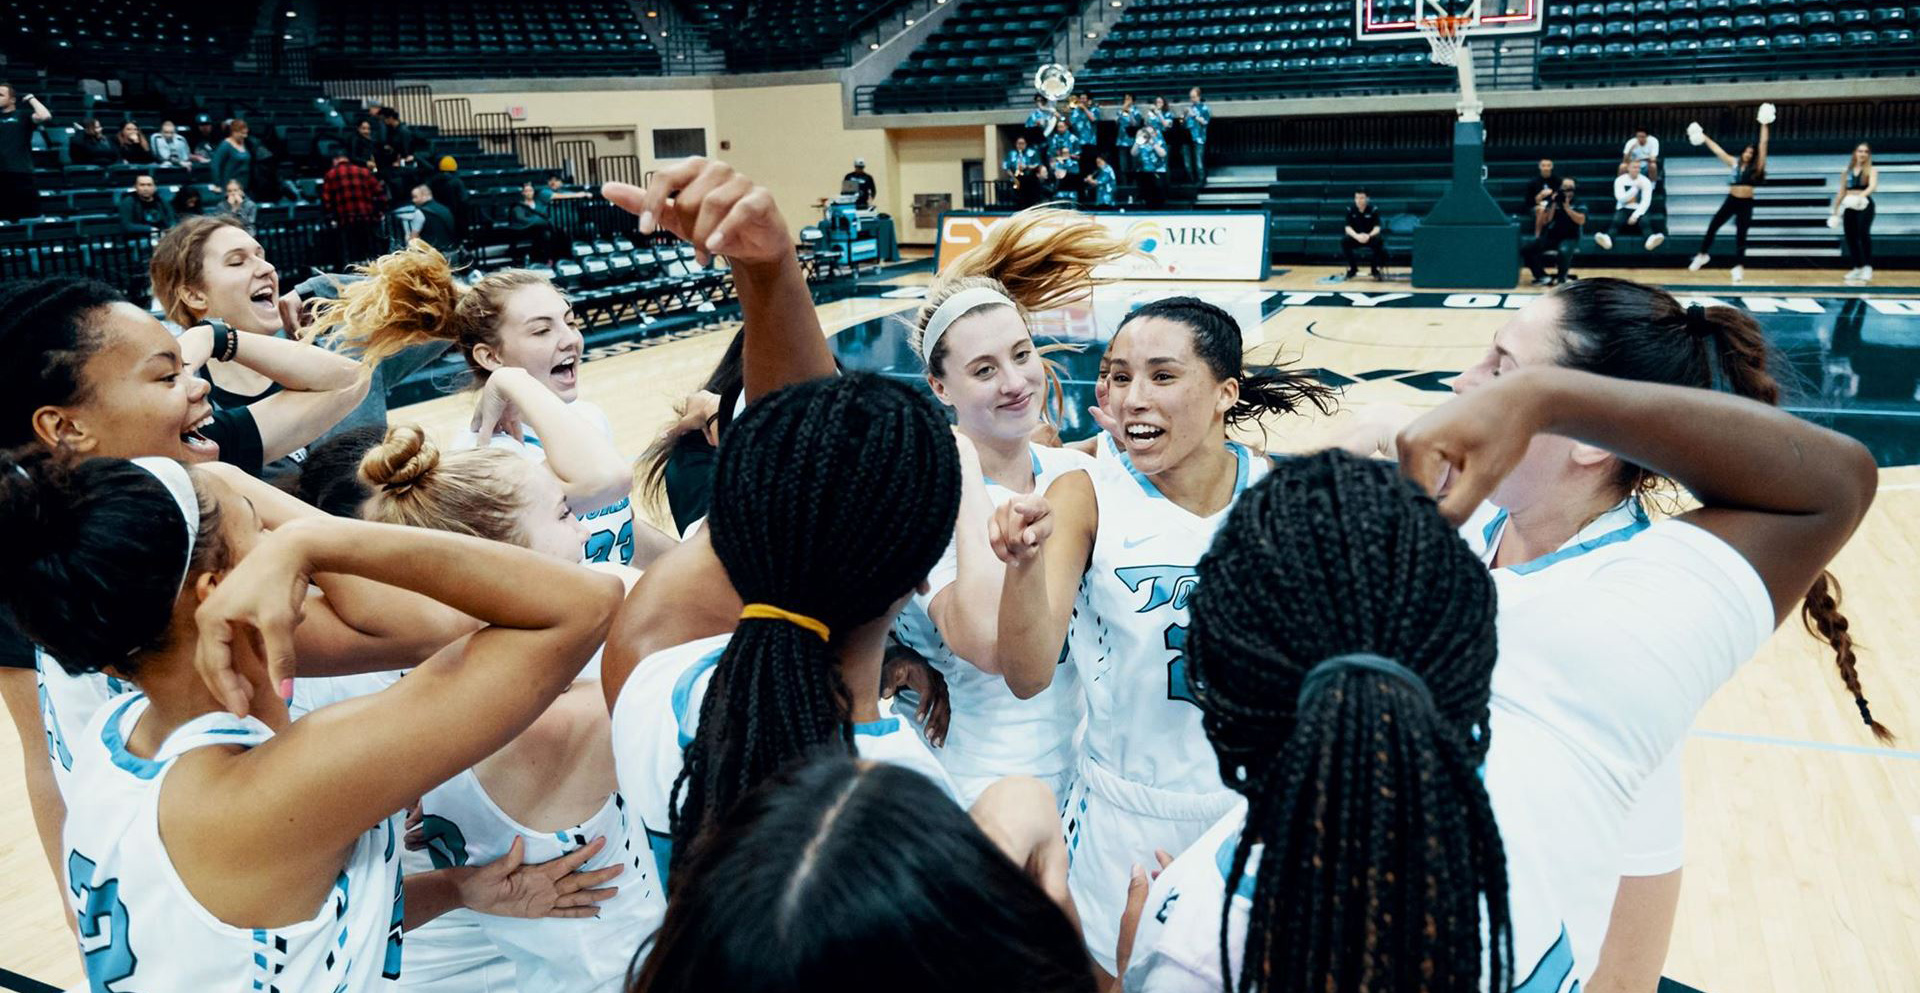 The USD women's basketball team had a strong 2019-20 season, even if it was cut short by the COVID-19 coronavirus pandemic. Myah Pace reflects on the season and her desire to win again.